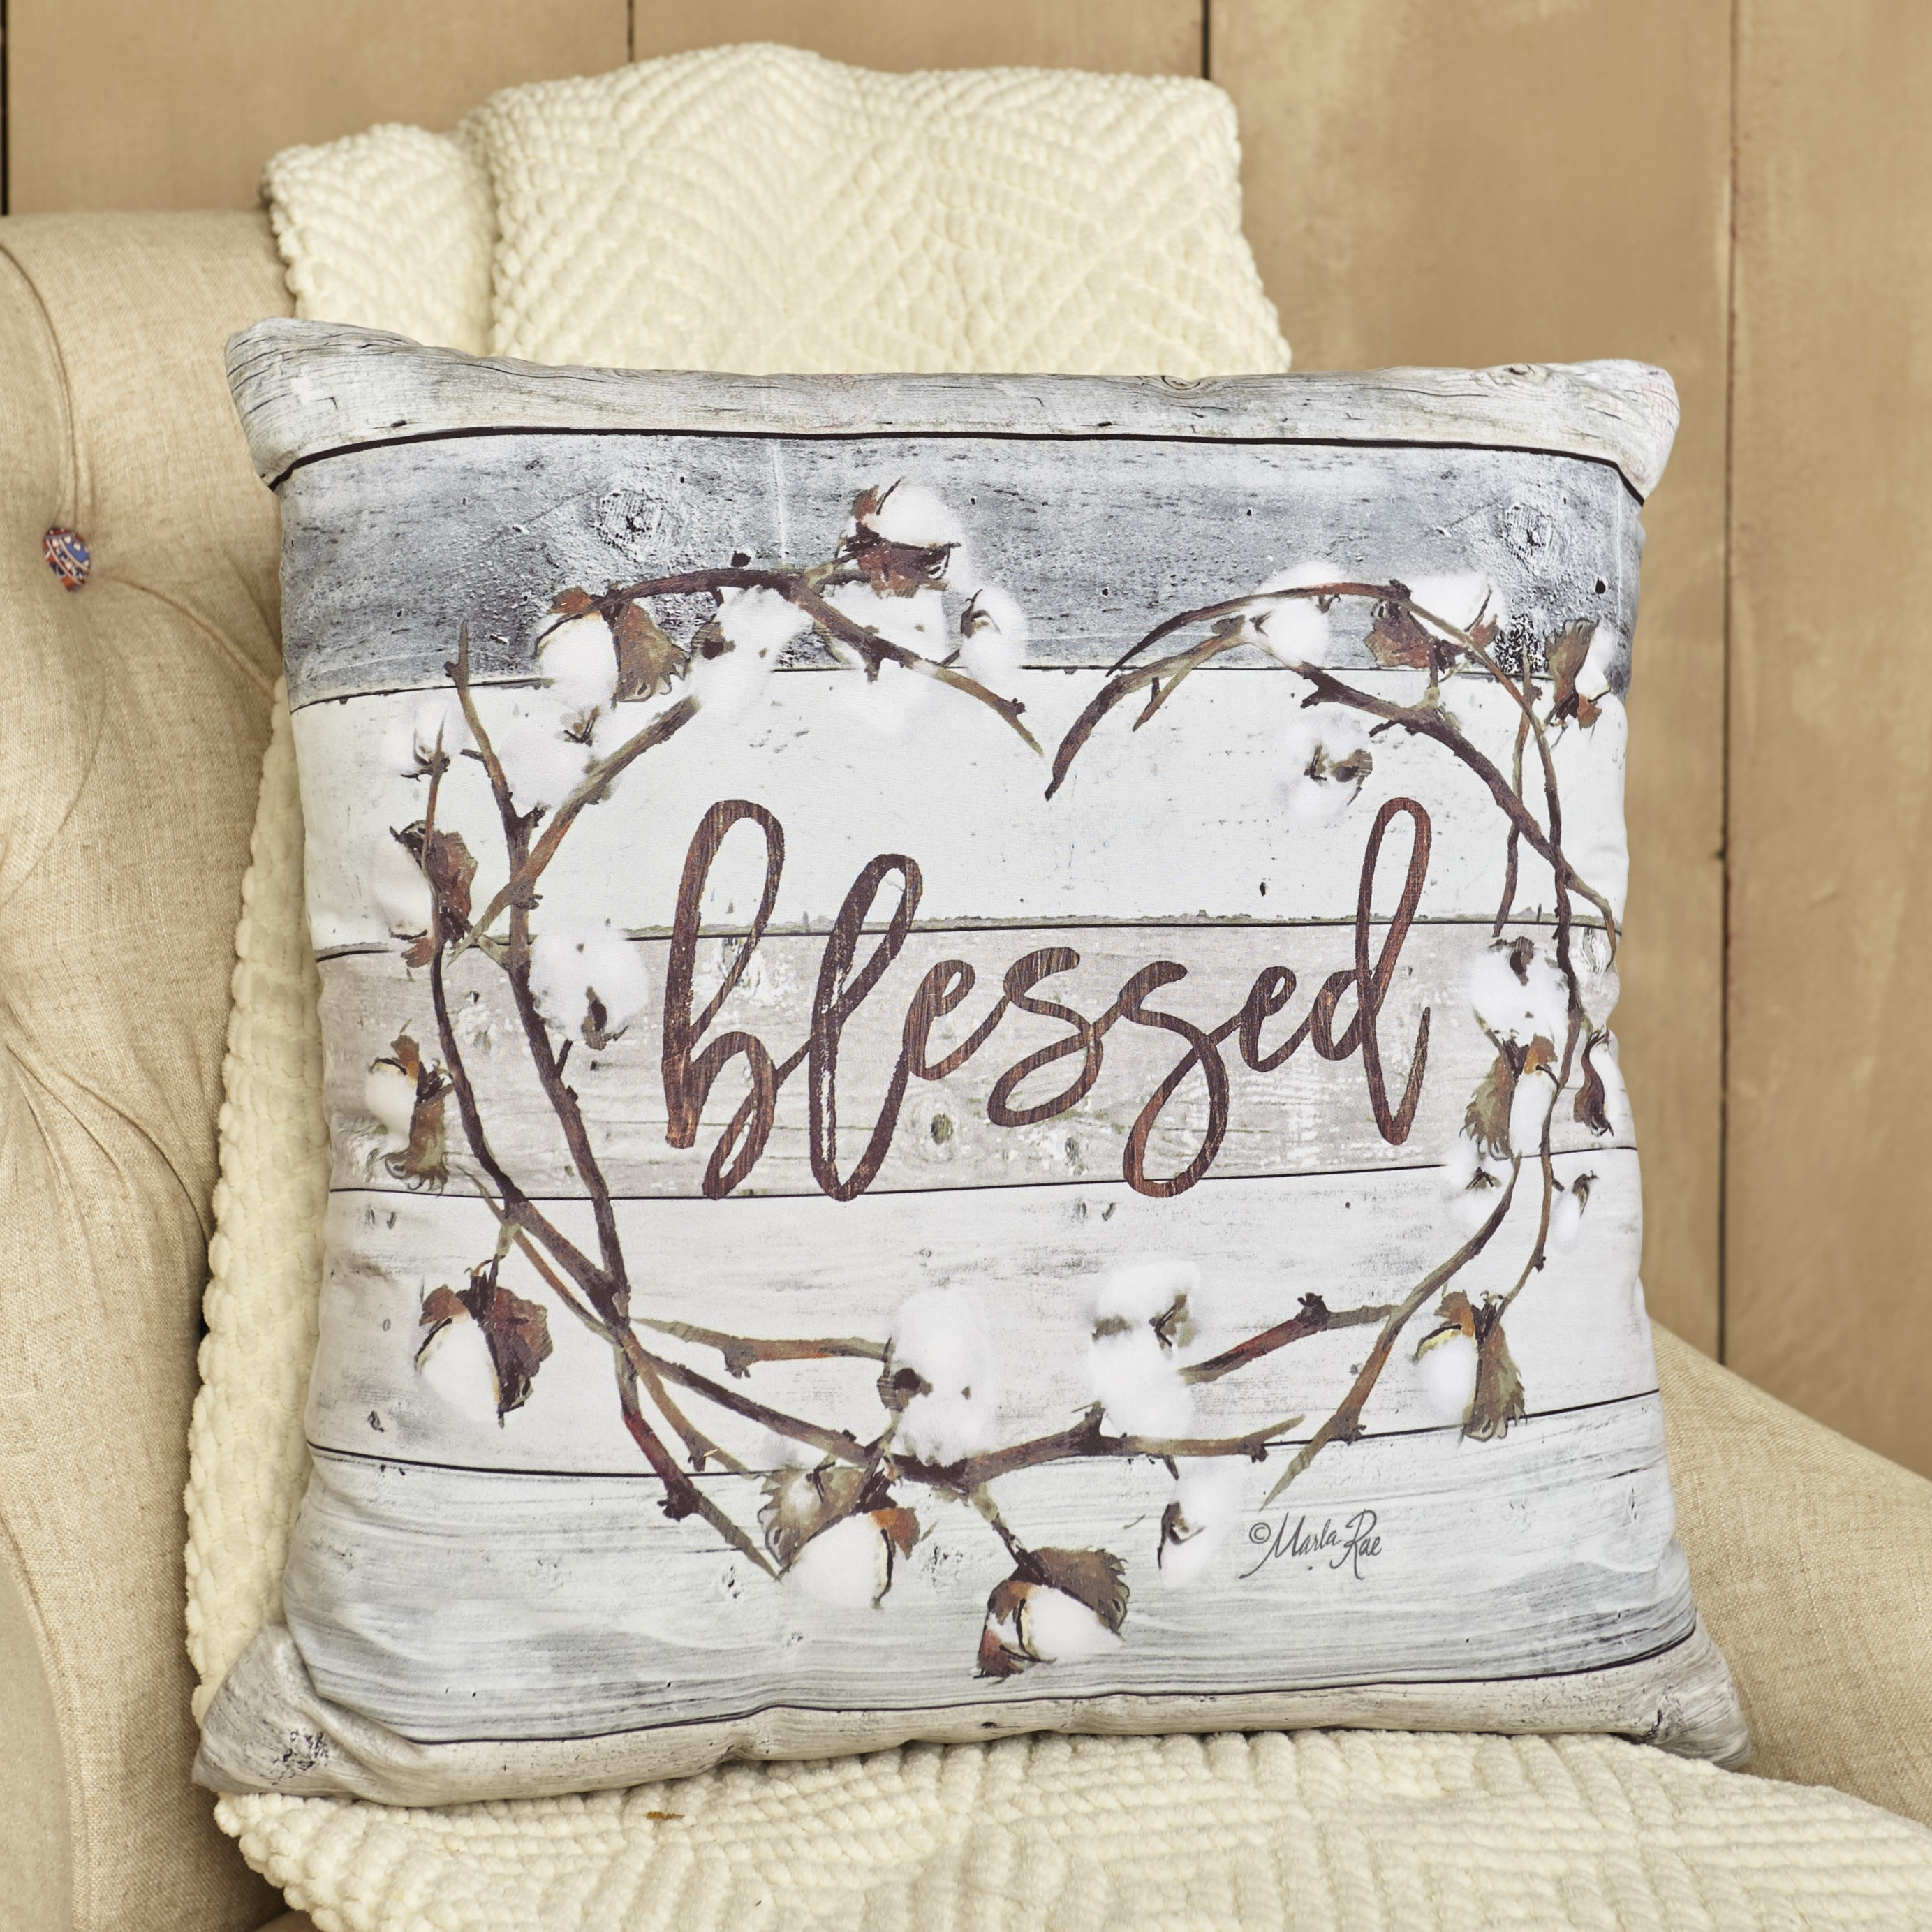 Cotton Boll Accent Pillow With Country Blessed Sentiment Message Walmart Com Walmart Com